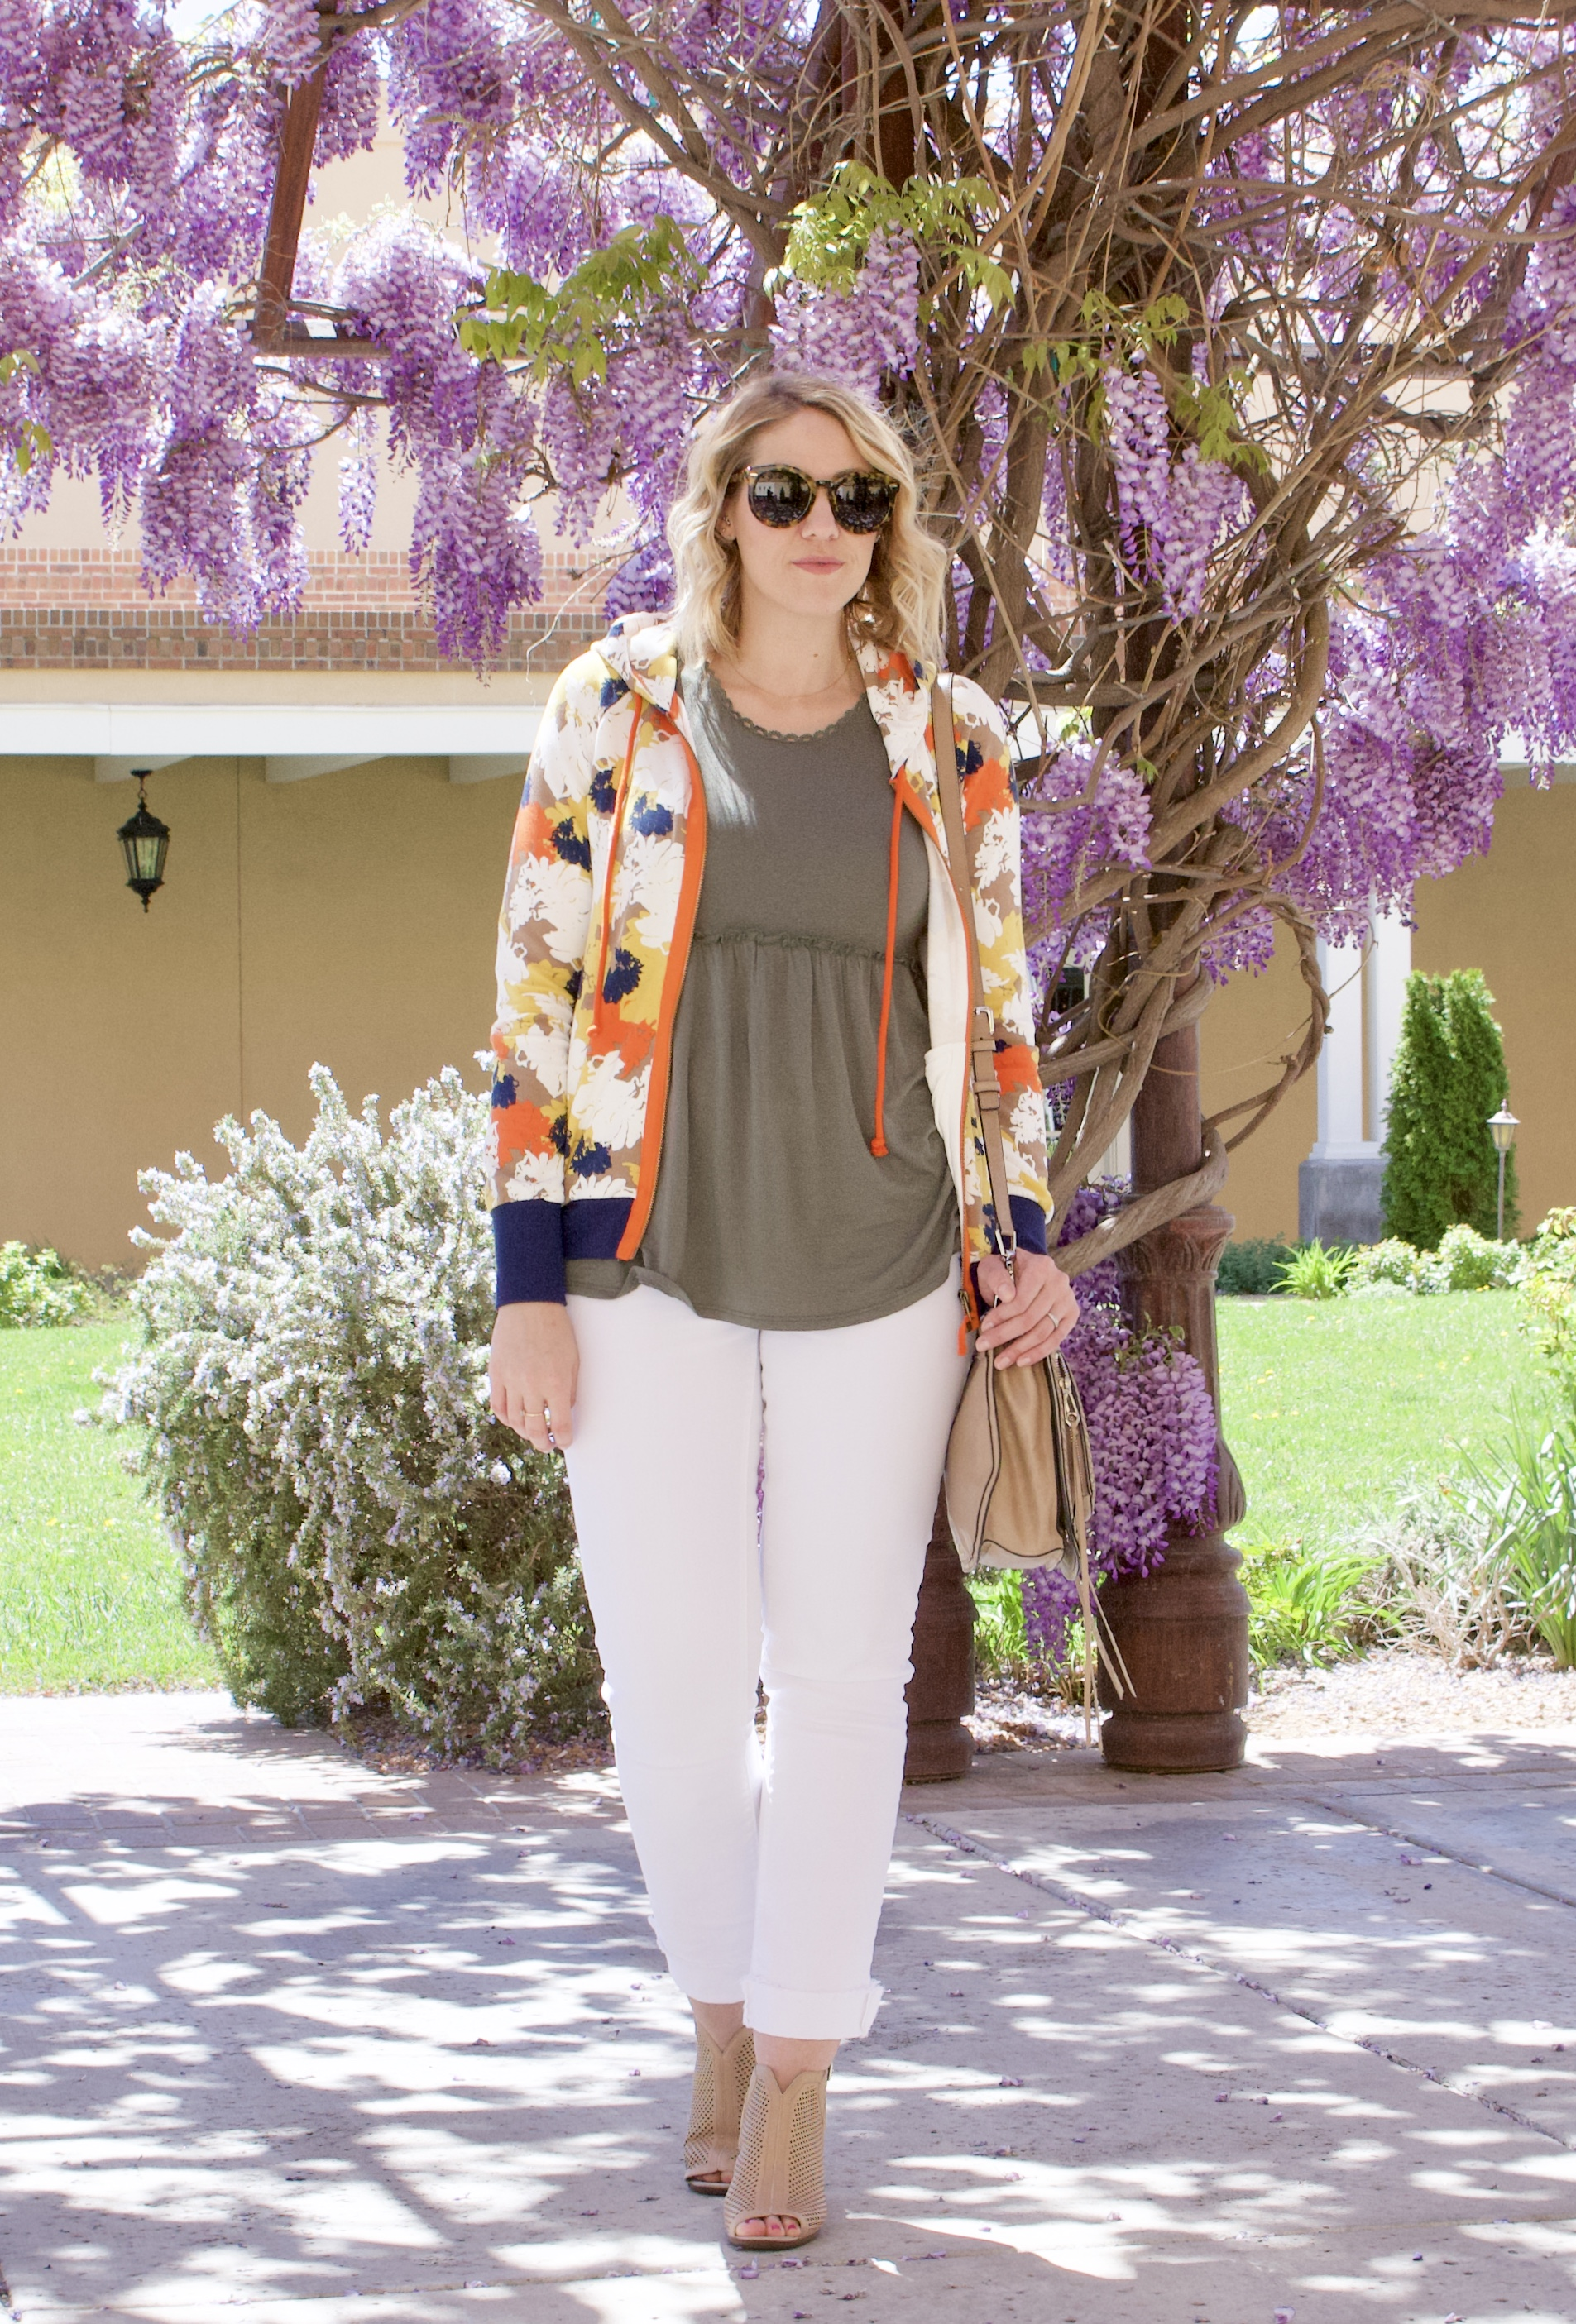 how to wear white jeans for spring #whitejeans #curvyfashion #loveloft